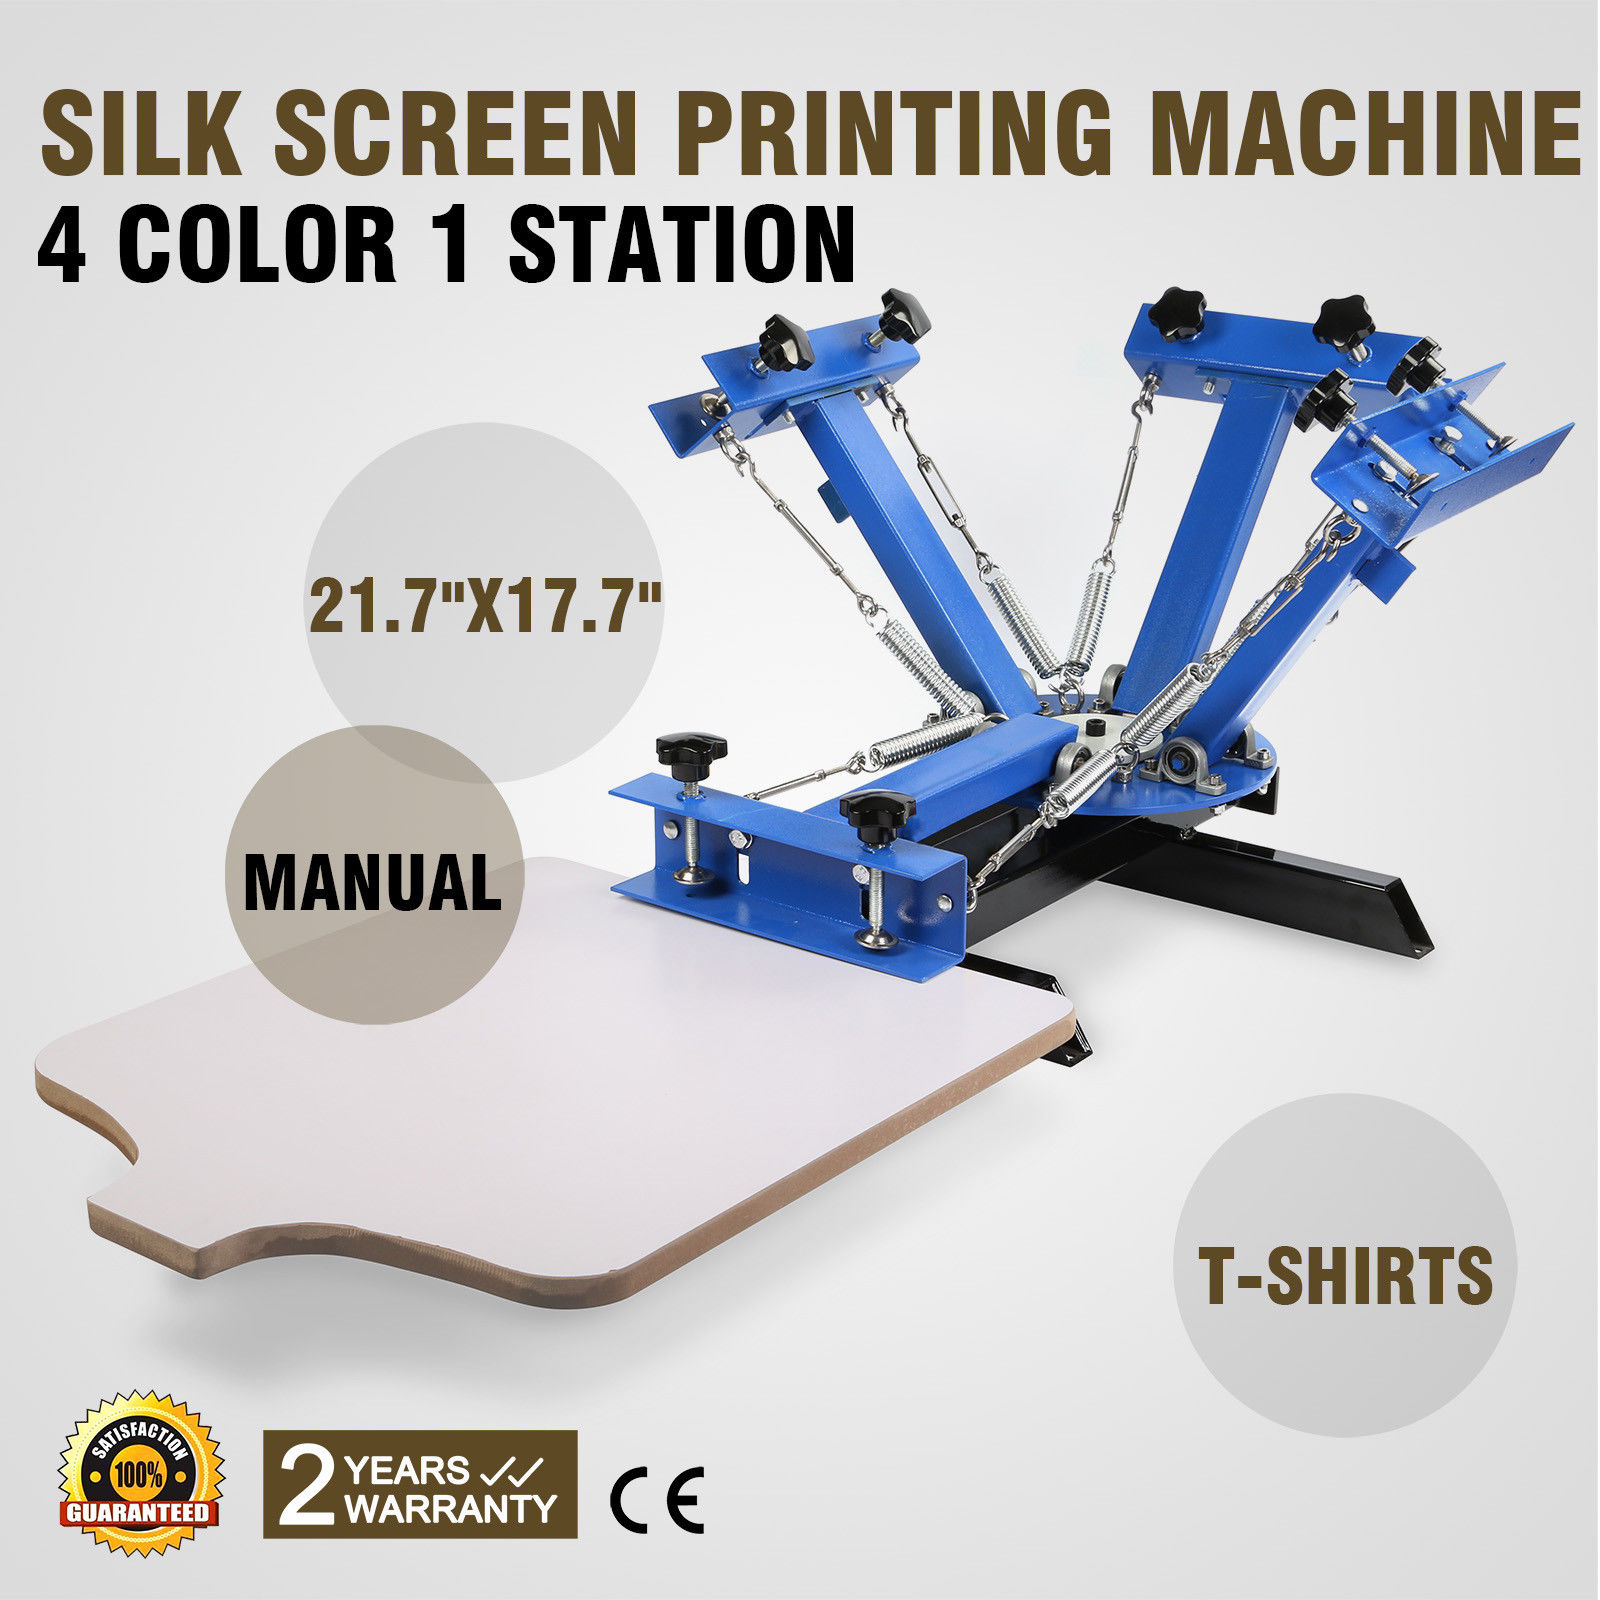 4 Color 1 Station Silk Screen Printing Machine Pressing T-Shirt Print Cutting